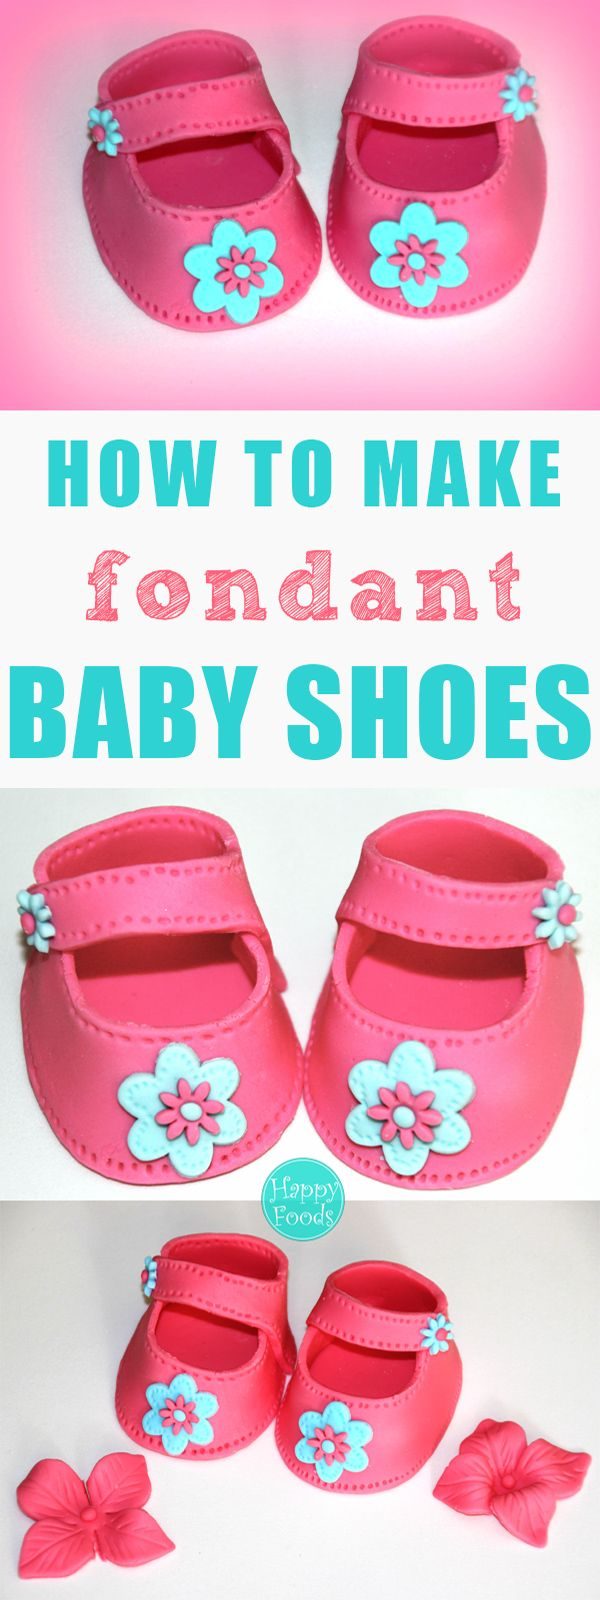 How To Make Fondant Baby Shoes (Video Tutorial)